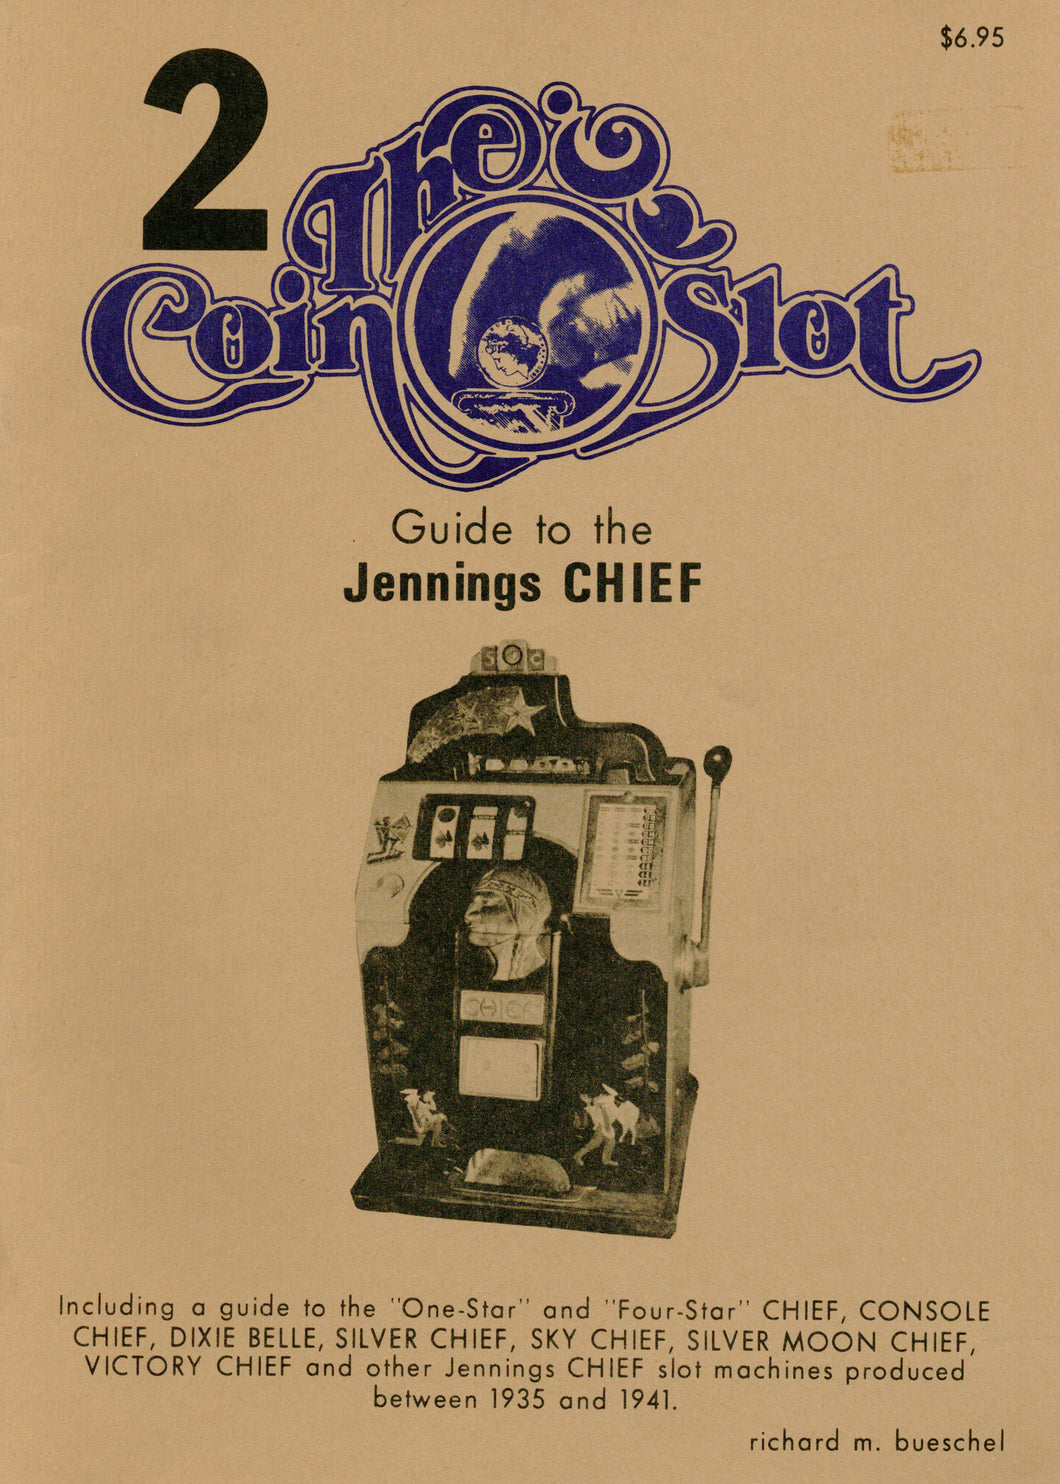 Coin Slot # 2. Guide to the Jennings Chief